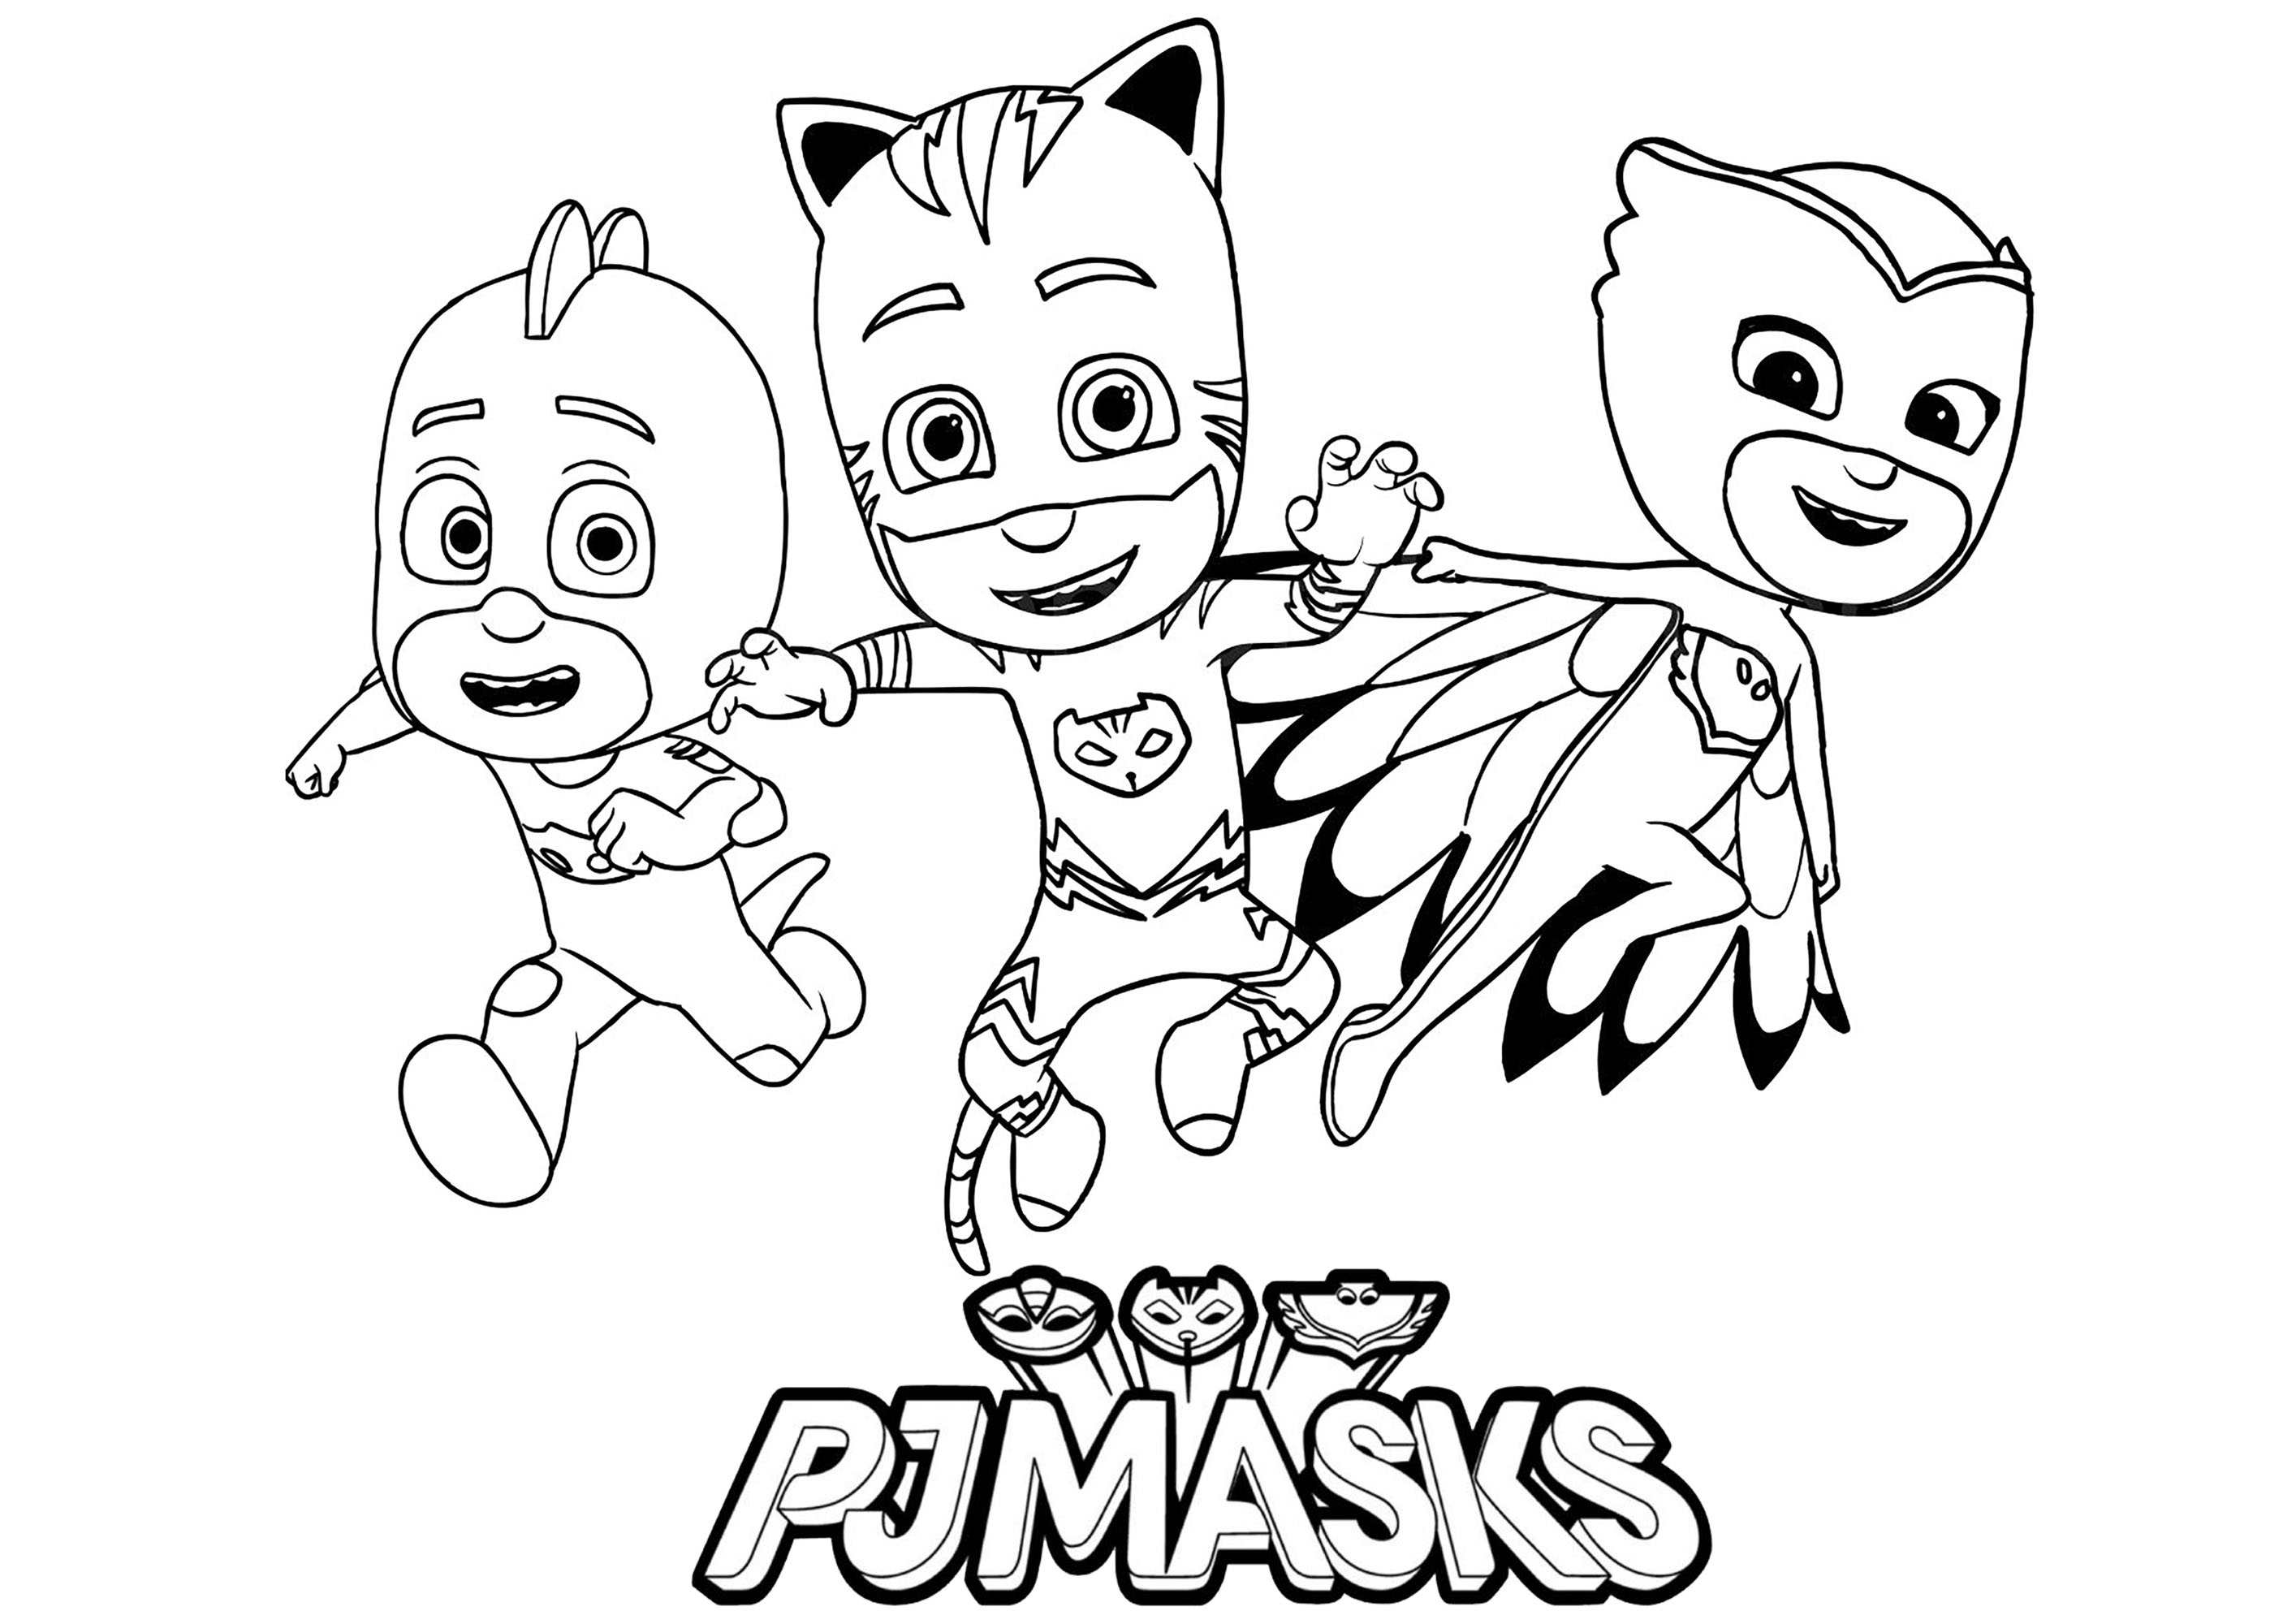 P J Mask Coloring Page Coloring Pages